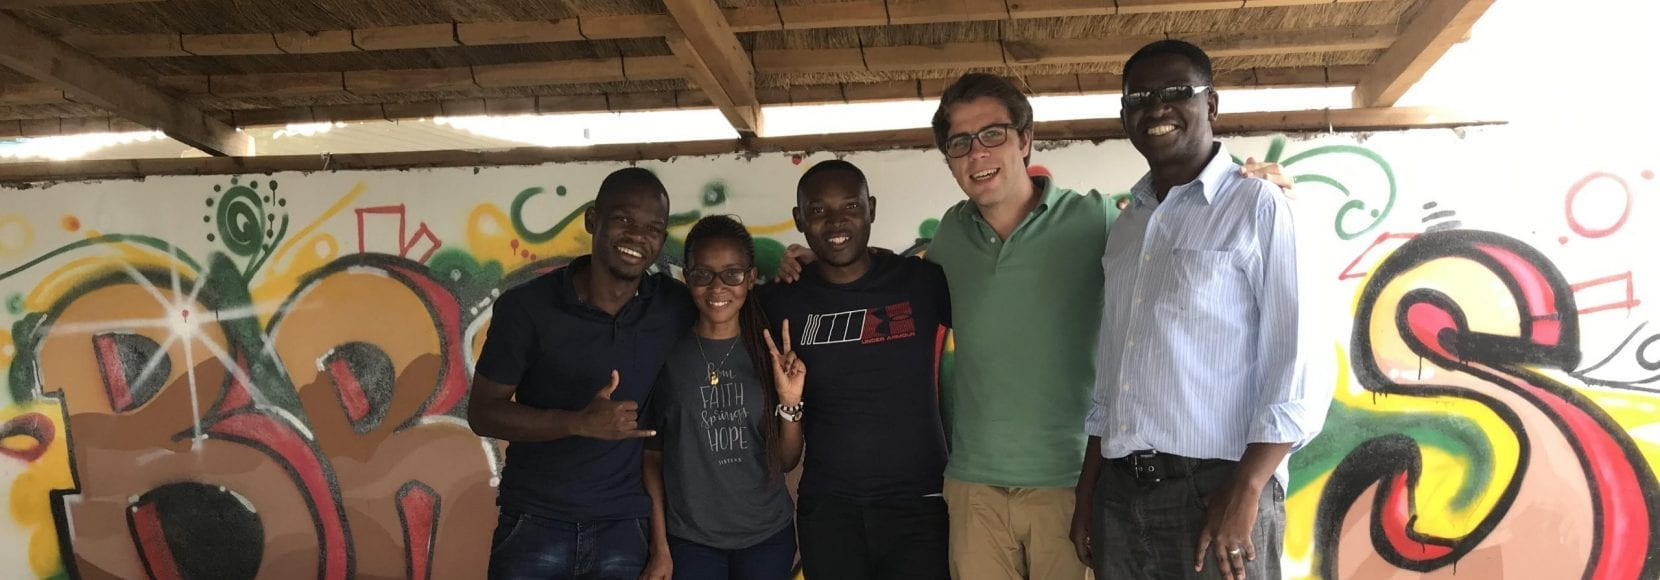 TechnoServe Fellow with team in Zambia working on food security and malnutrition initiatives